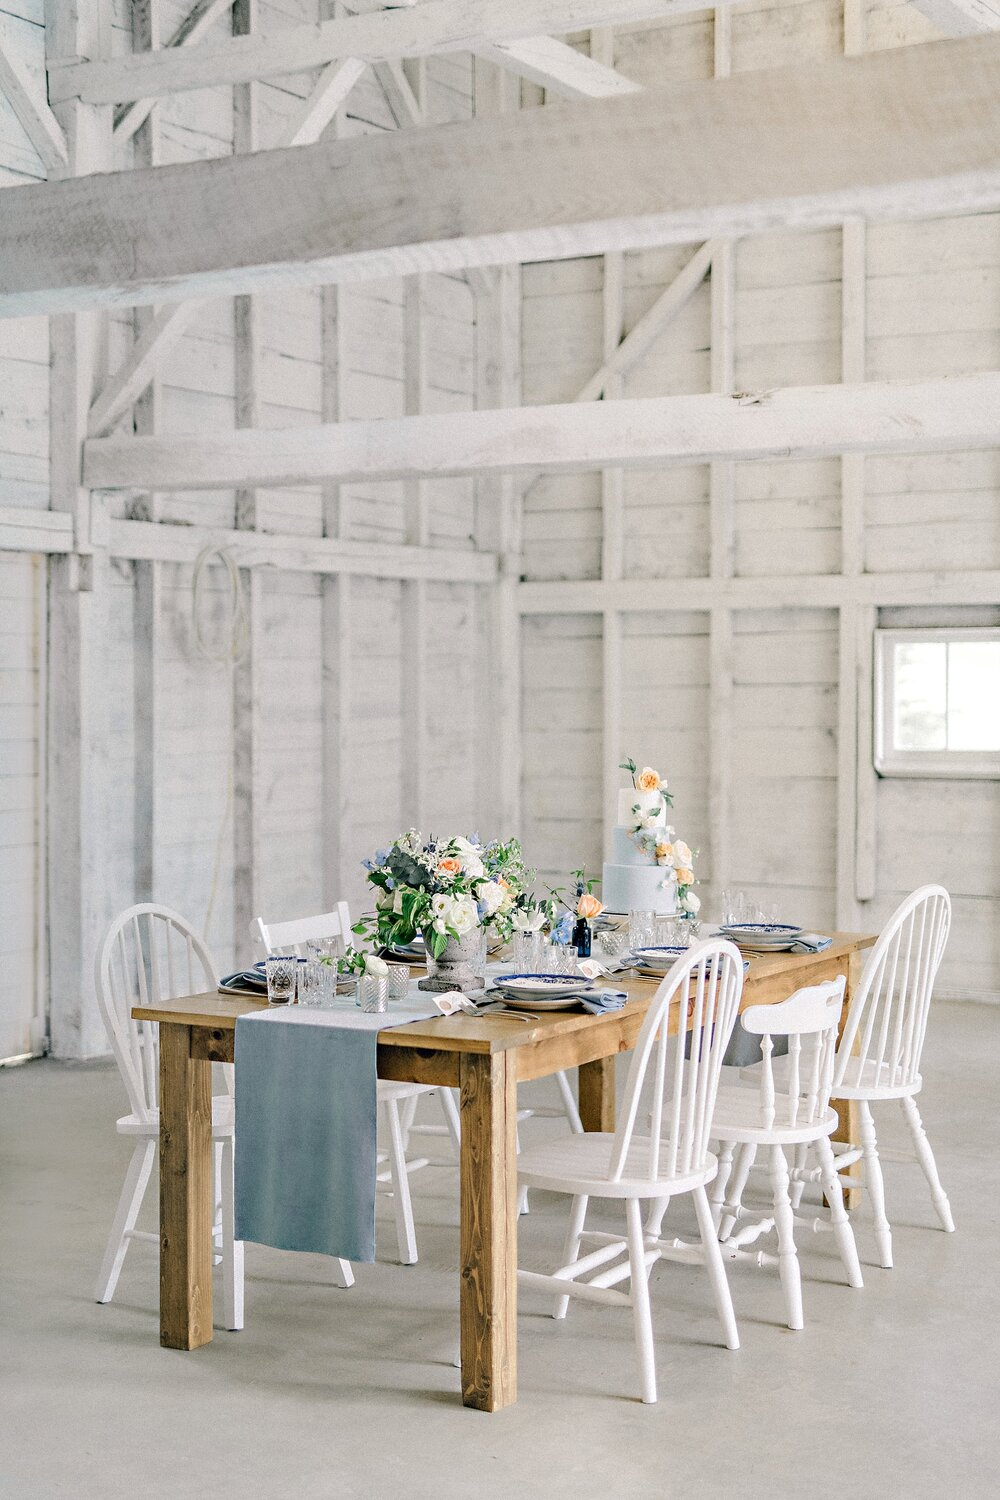 Halifax-Wedding-Photographer-summer-romantic-farm_09.jpg